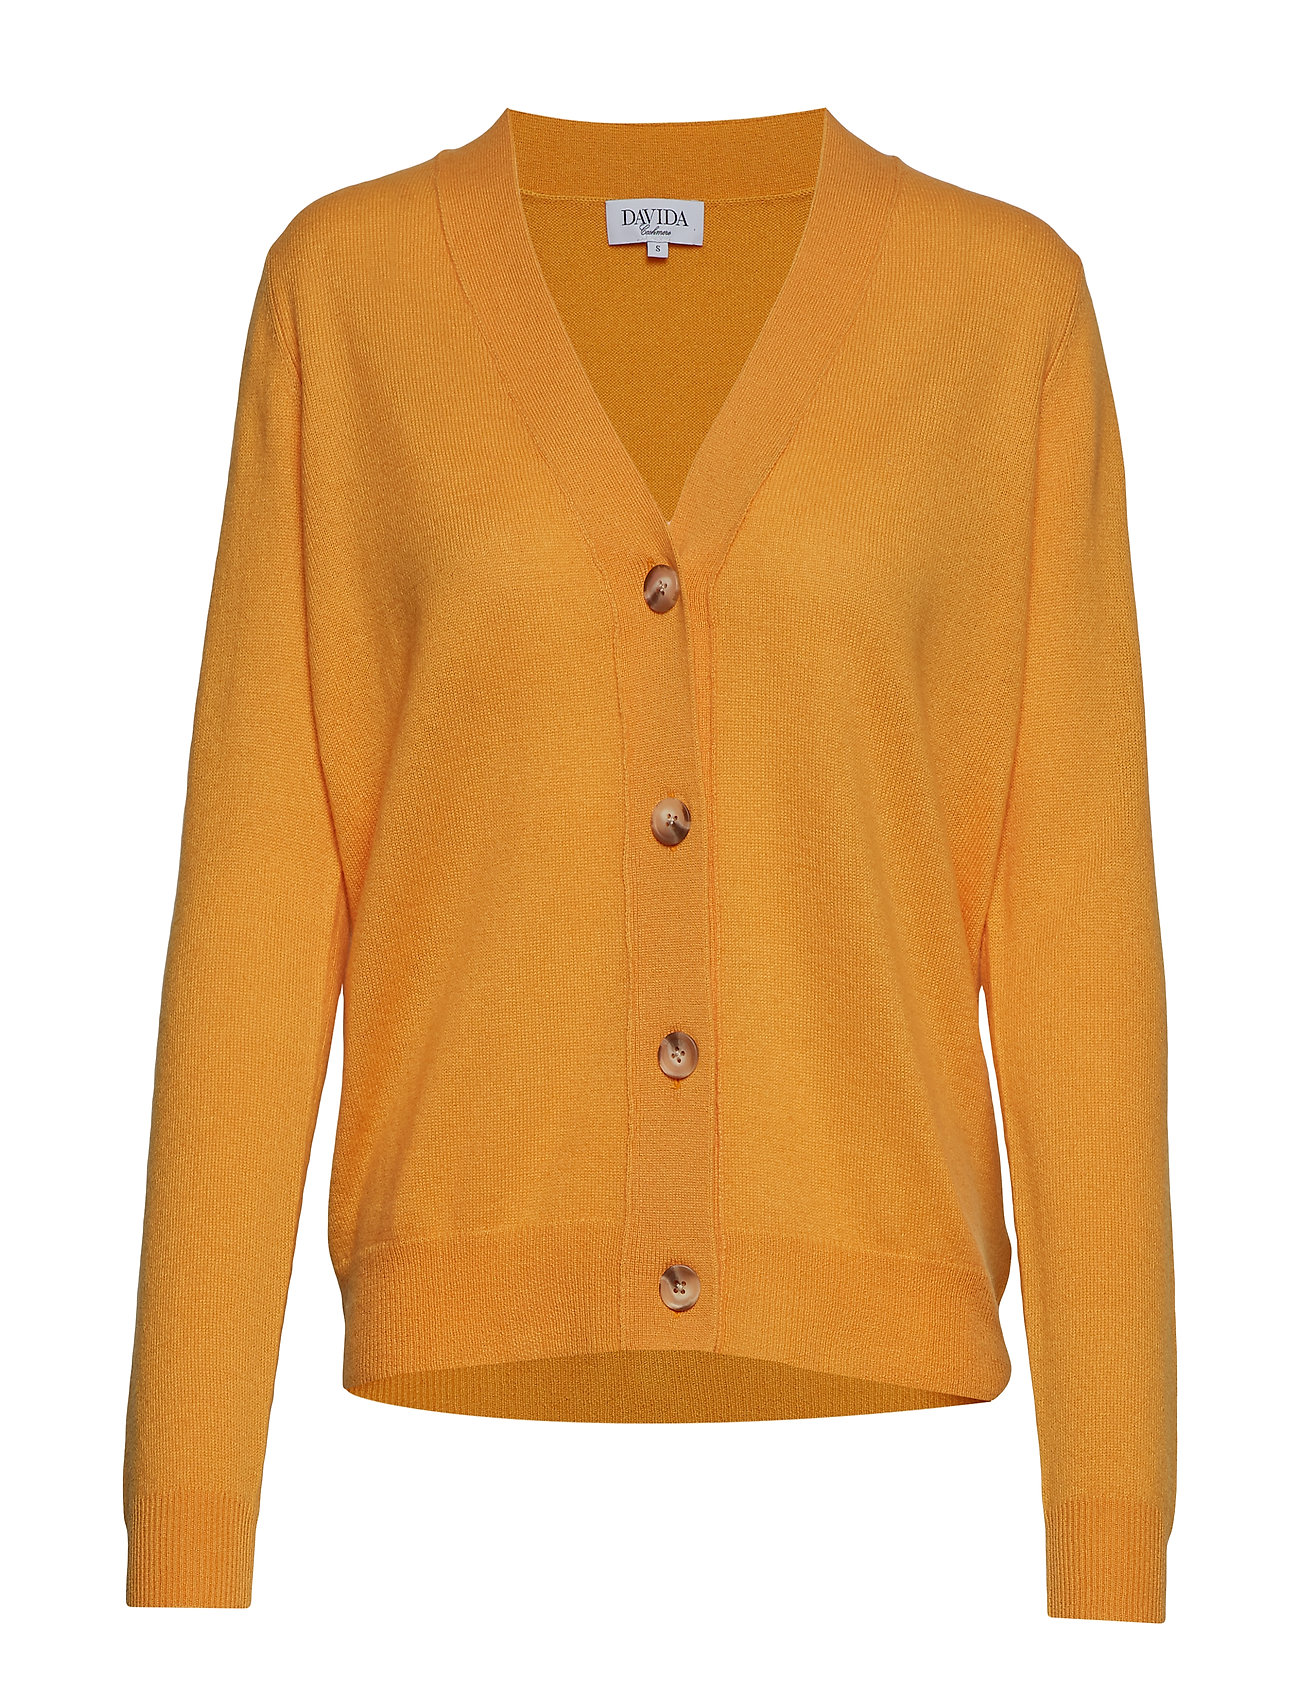 Davida Cashmere V-neck Boxy Cardigan - YELLOW